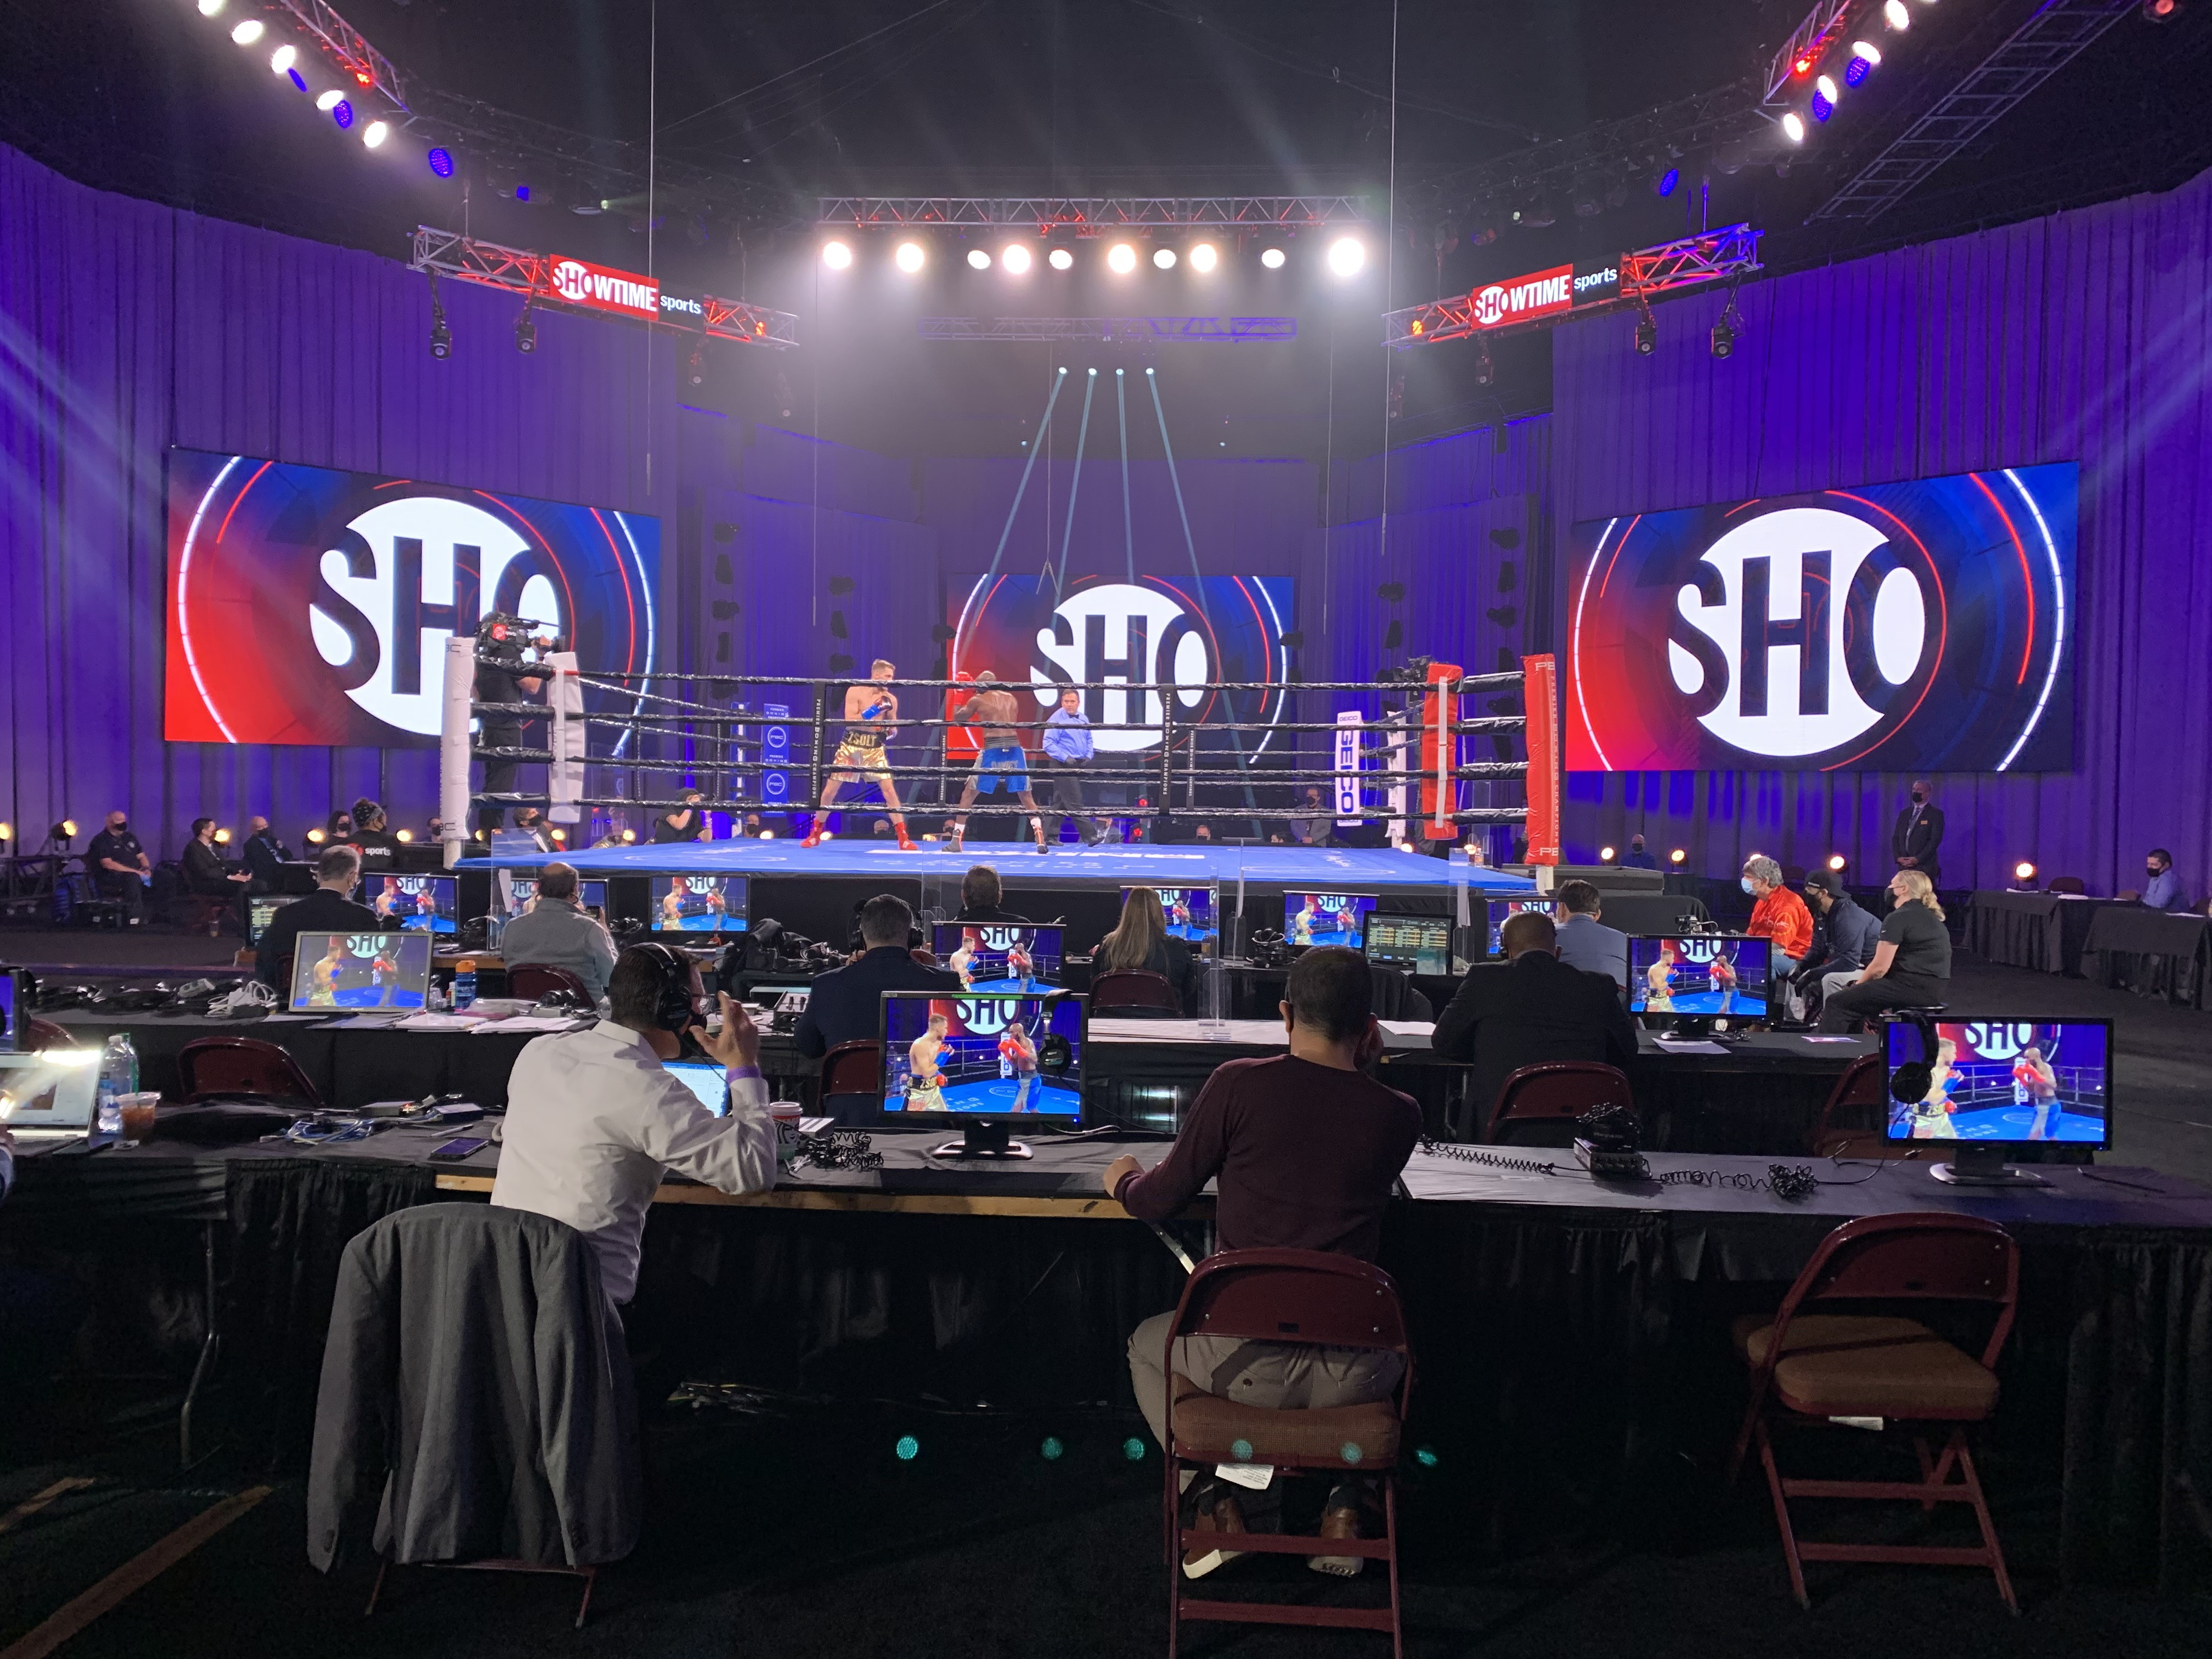 Moheagn-sun-arena-bellator-mma-2020-year-end-release.jpg